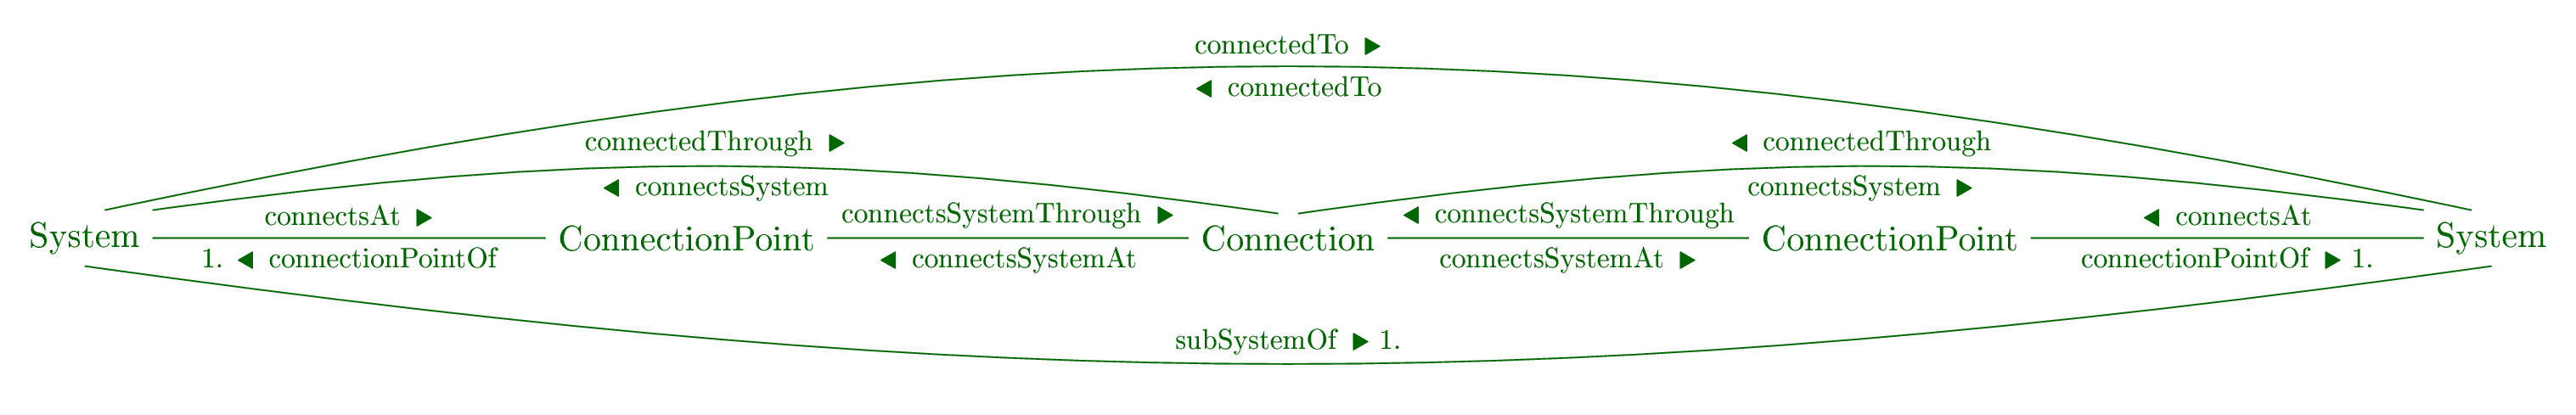 Overview of the System ontology